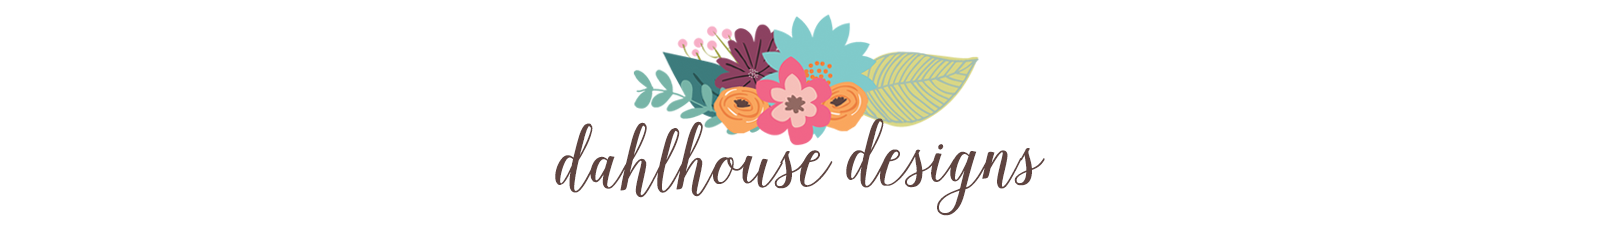 dahlhouse designs